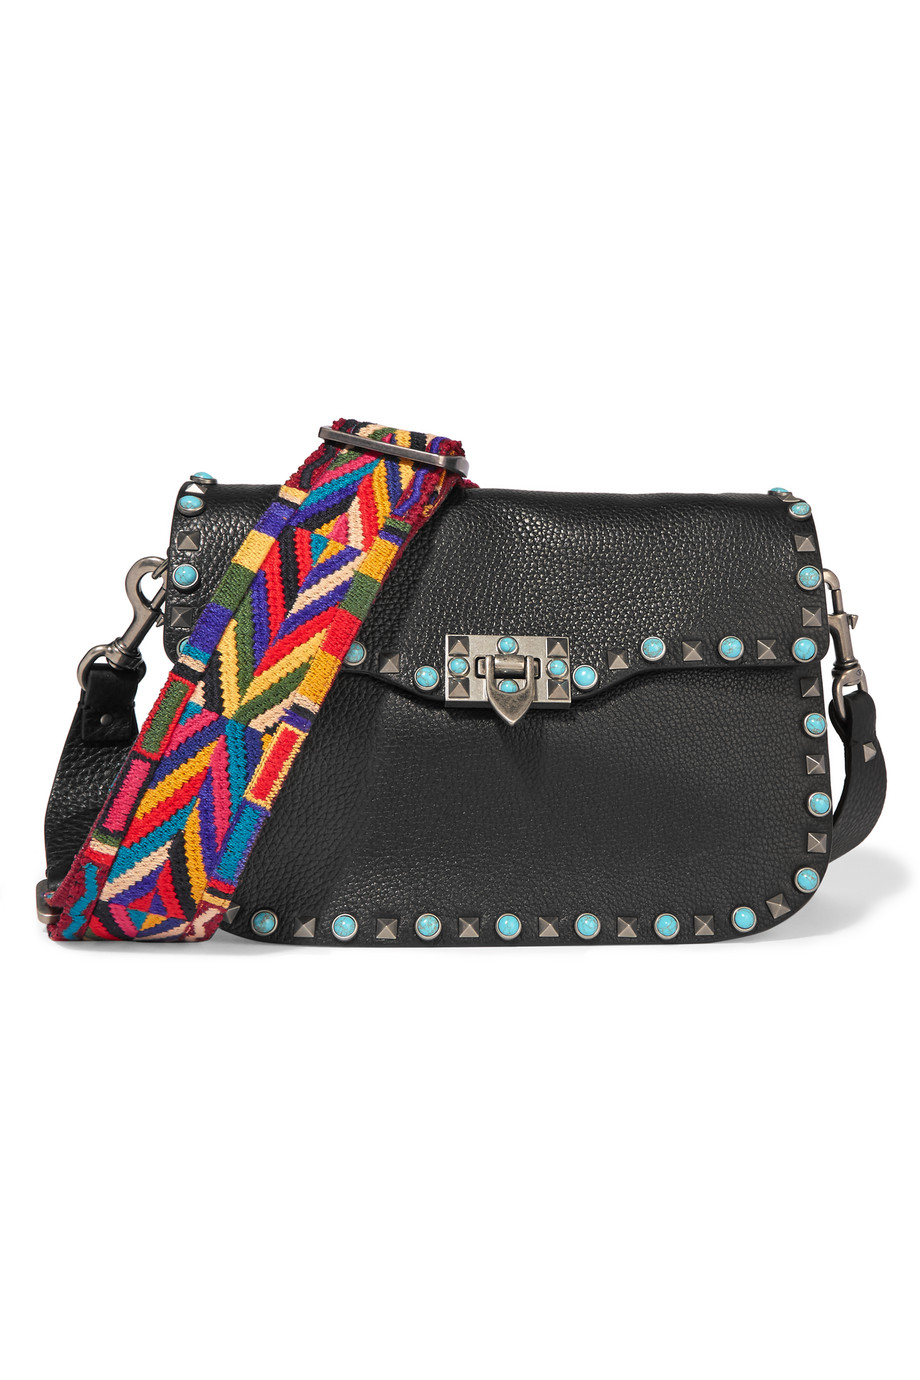 Valentino The Rockstud Embellished Textured-Leather Shoulder Bag, Black, Women's